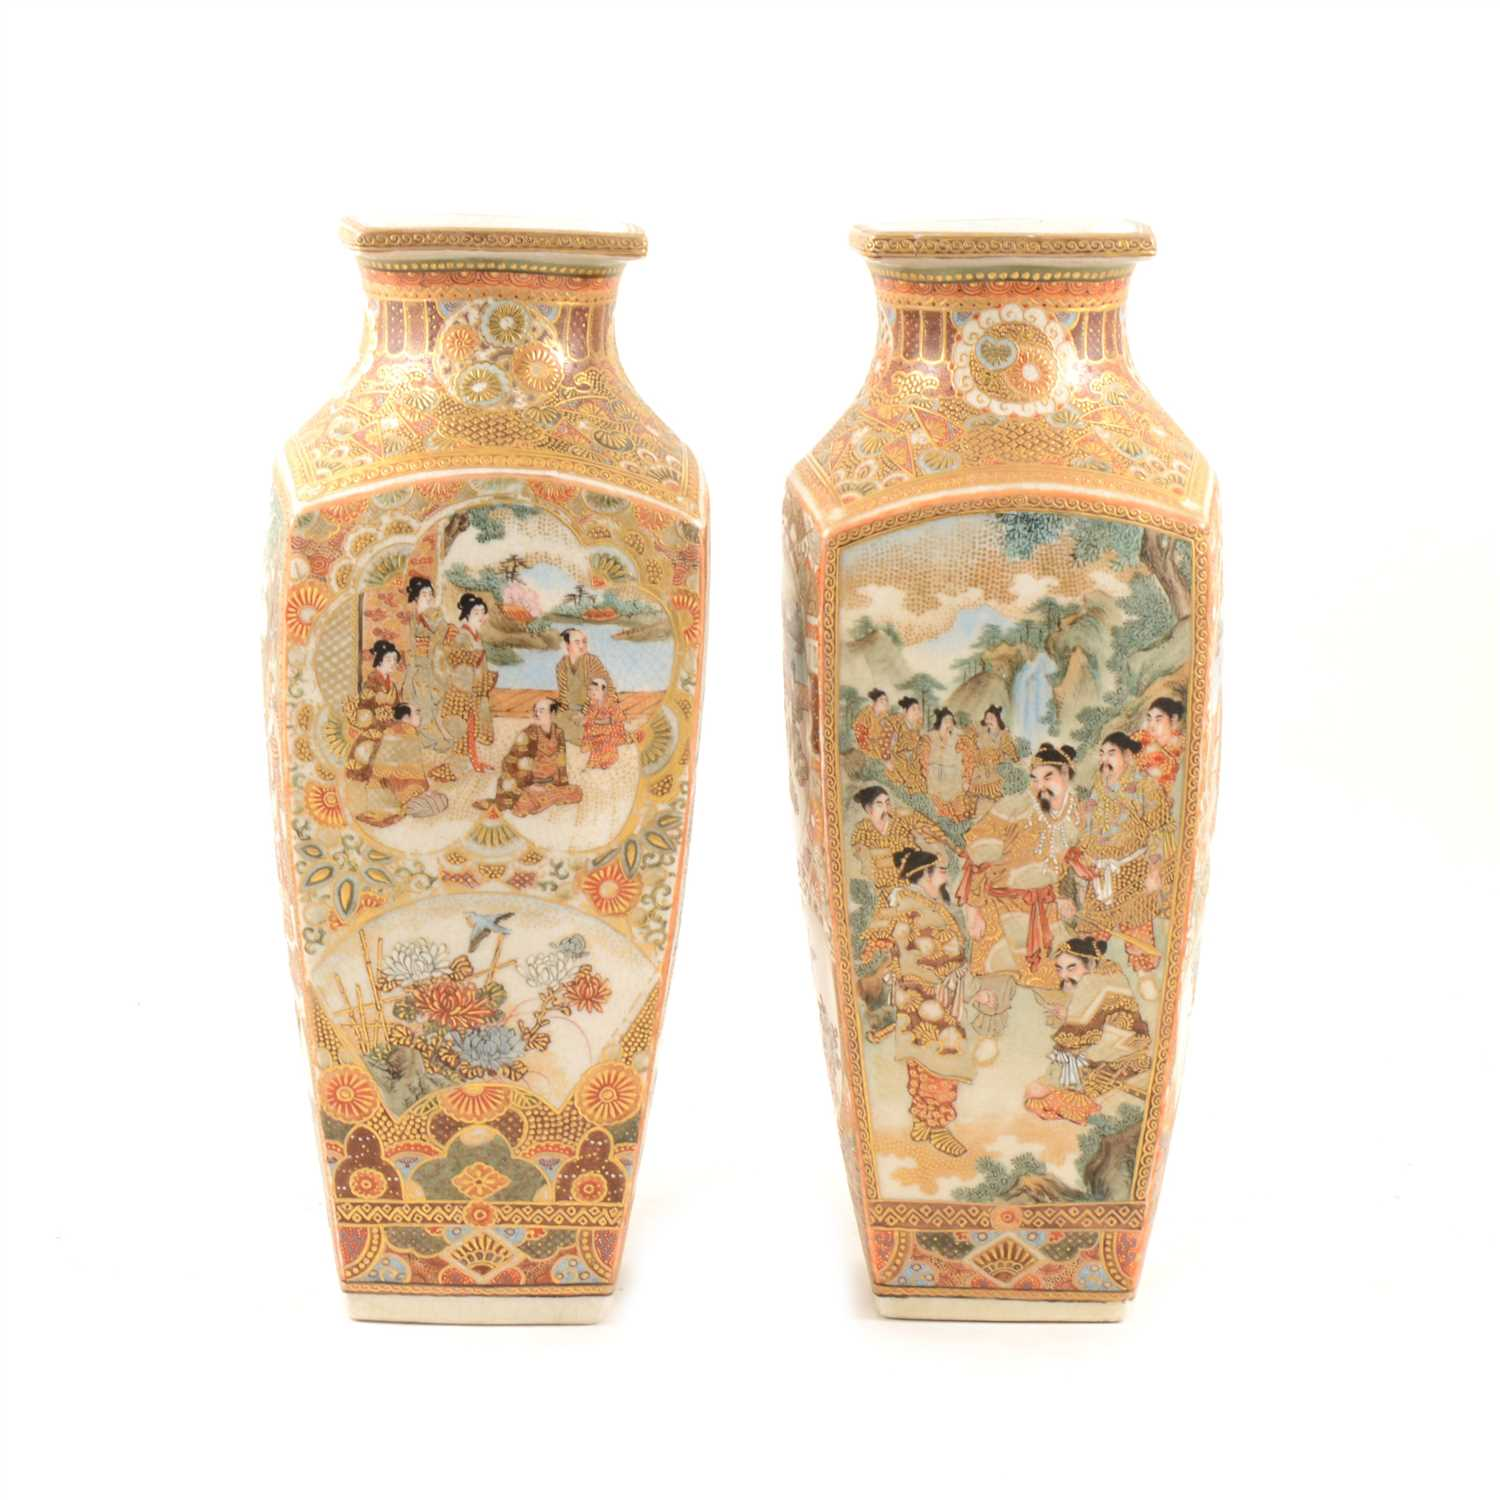 Lot 35-A pair of Japanese satsuma vases with panels depicting warriors, a family, and flowers, 30cm.